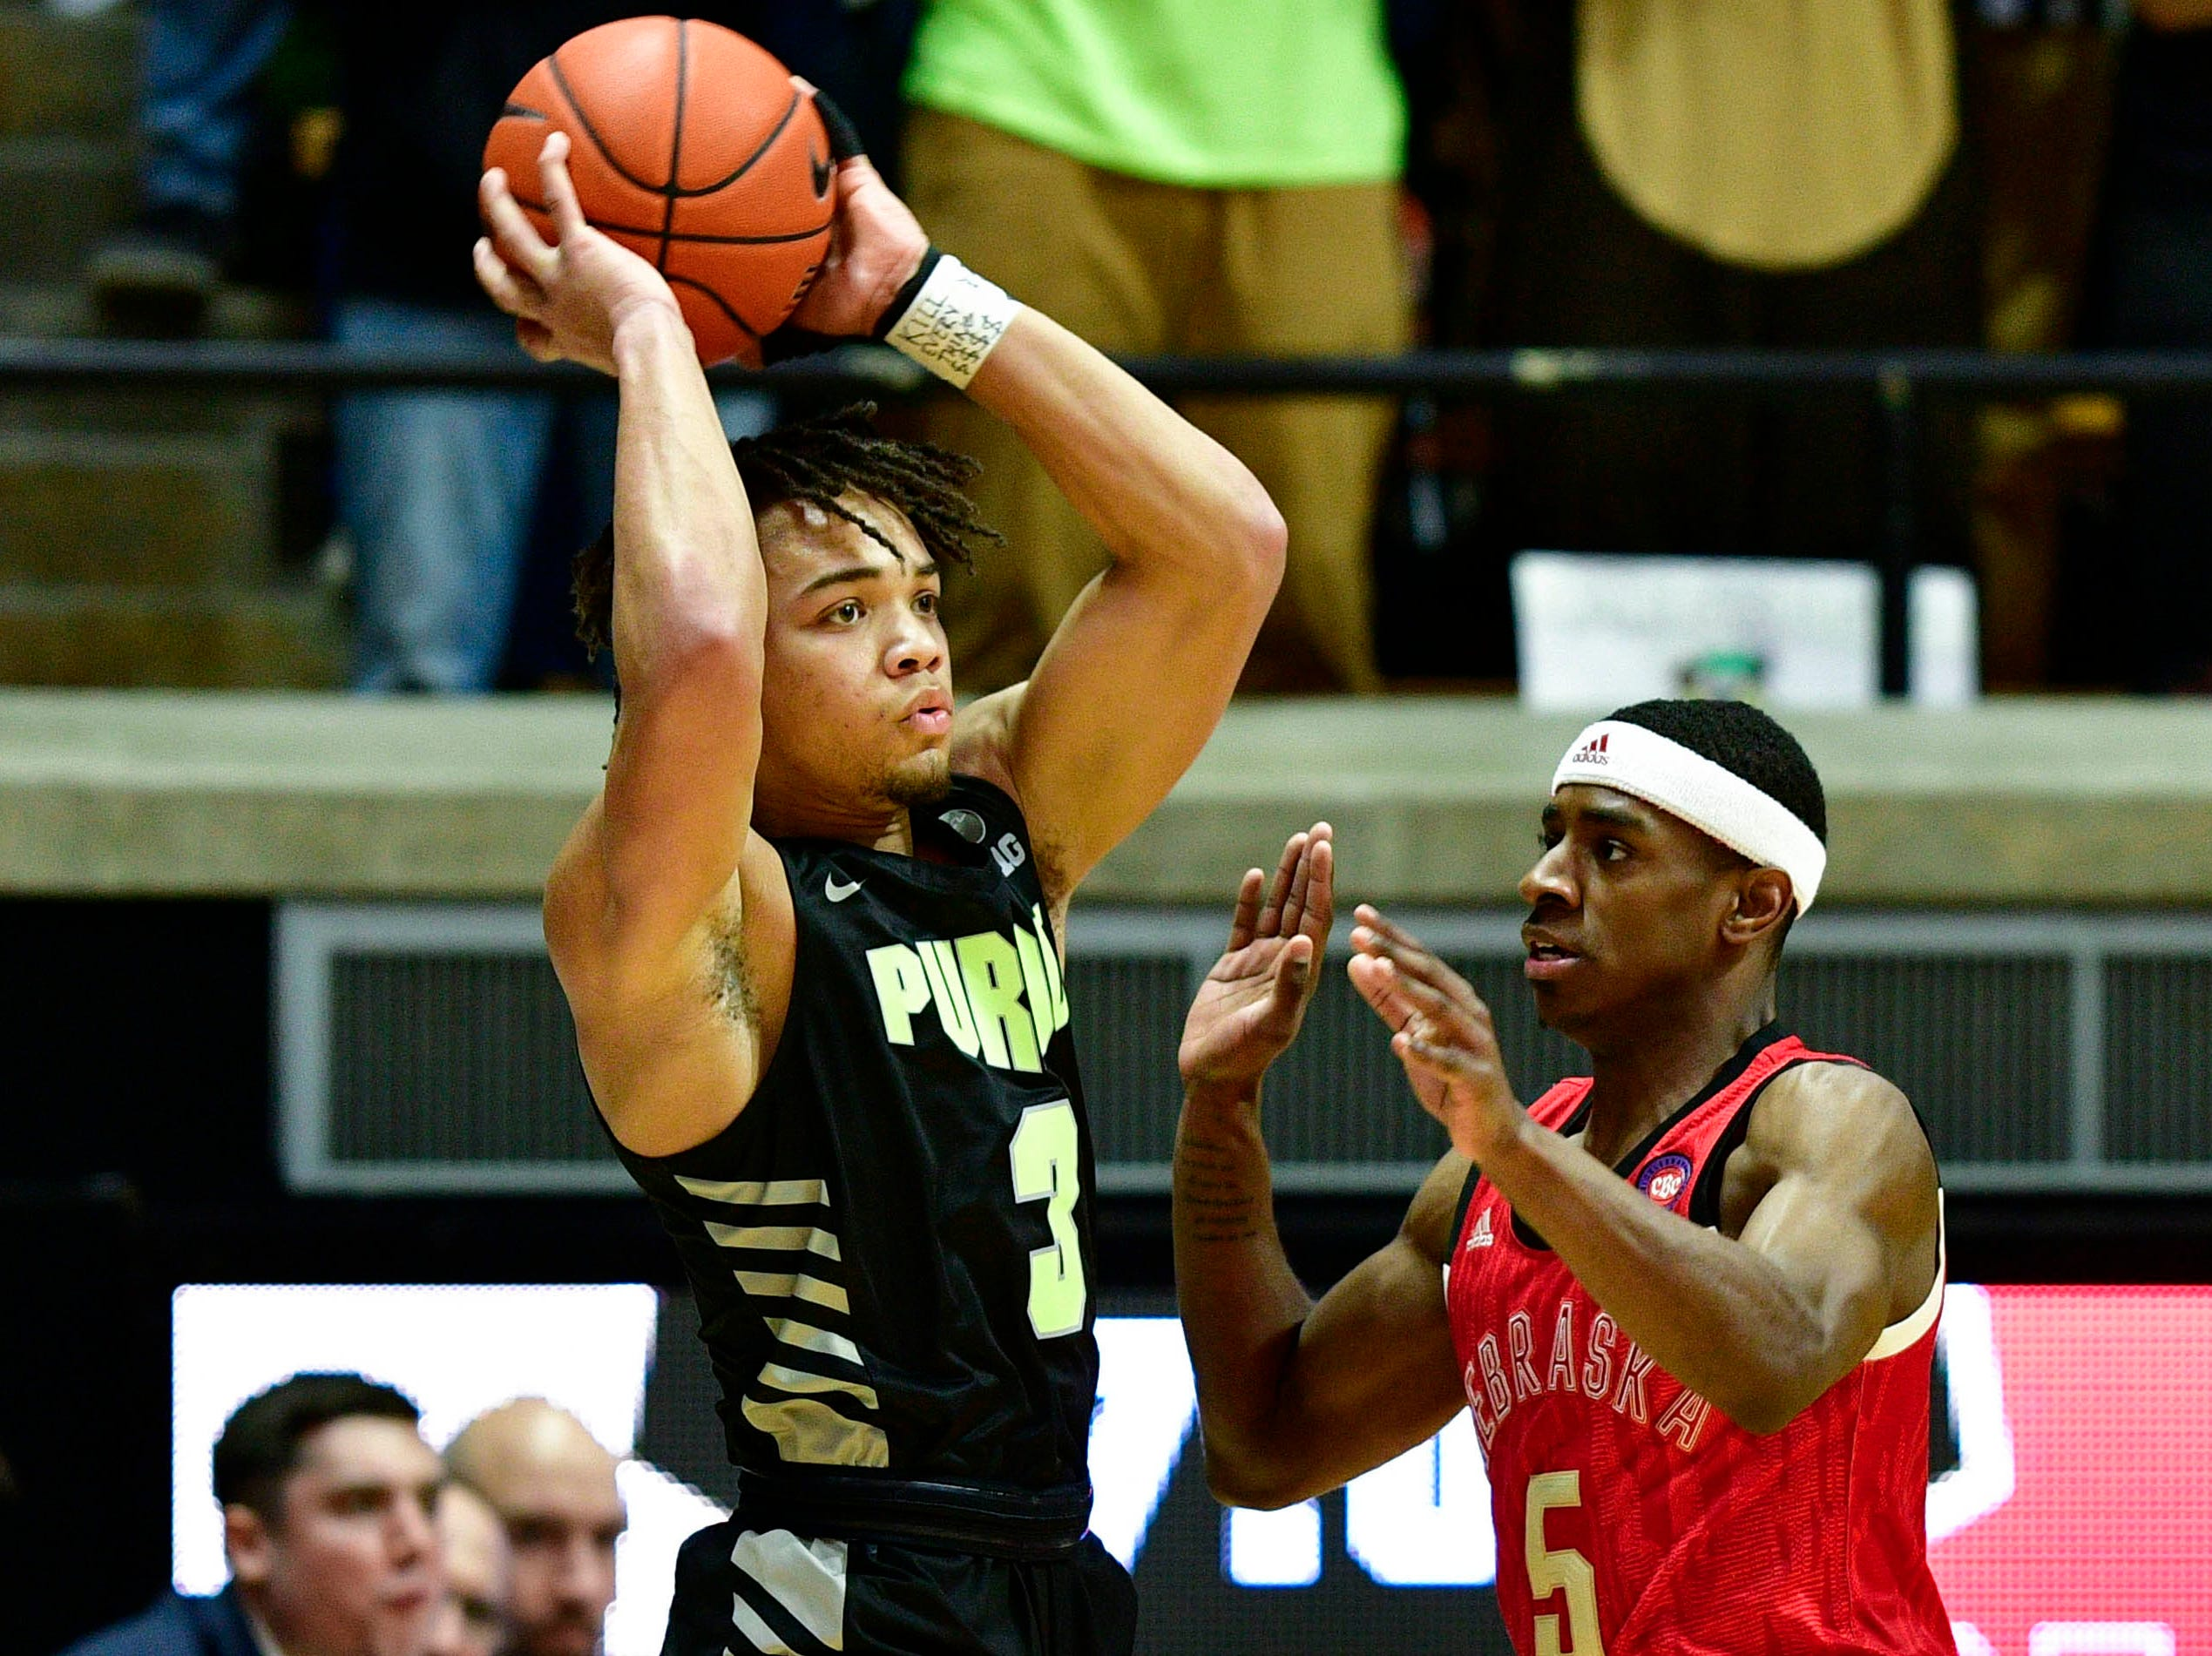 Purdue Boilermakers guard Eric Hunter Jr. (2) looks for an open teammate against Nebraska Cornhuskers guard Glynn Watson Jr. (5) during the first half of the game at Mackey Arena.